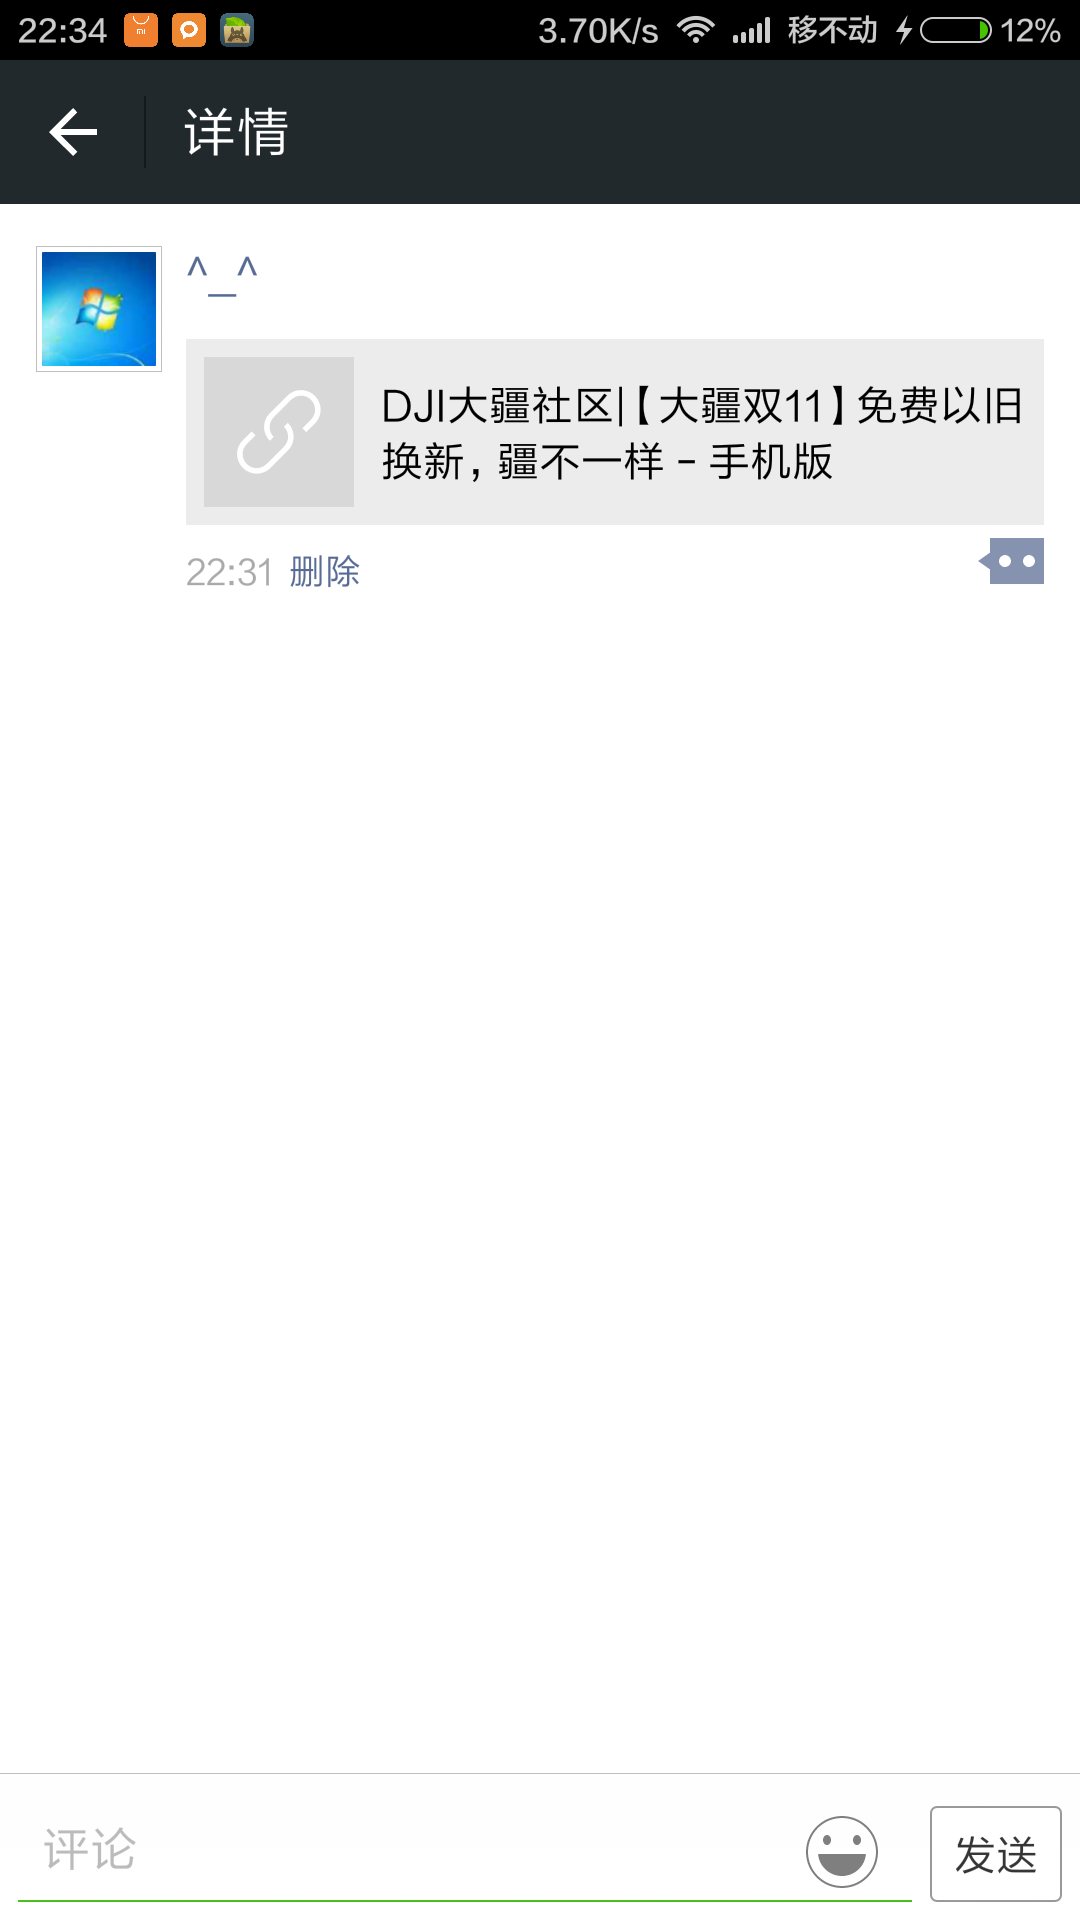 Screenshot_2015-11-03-22-34-30_com.tencent.mm.png